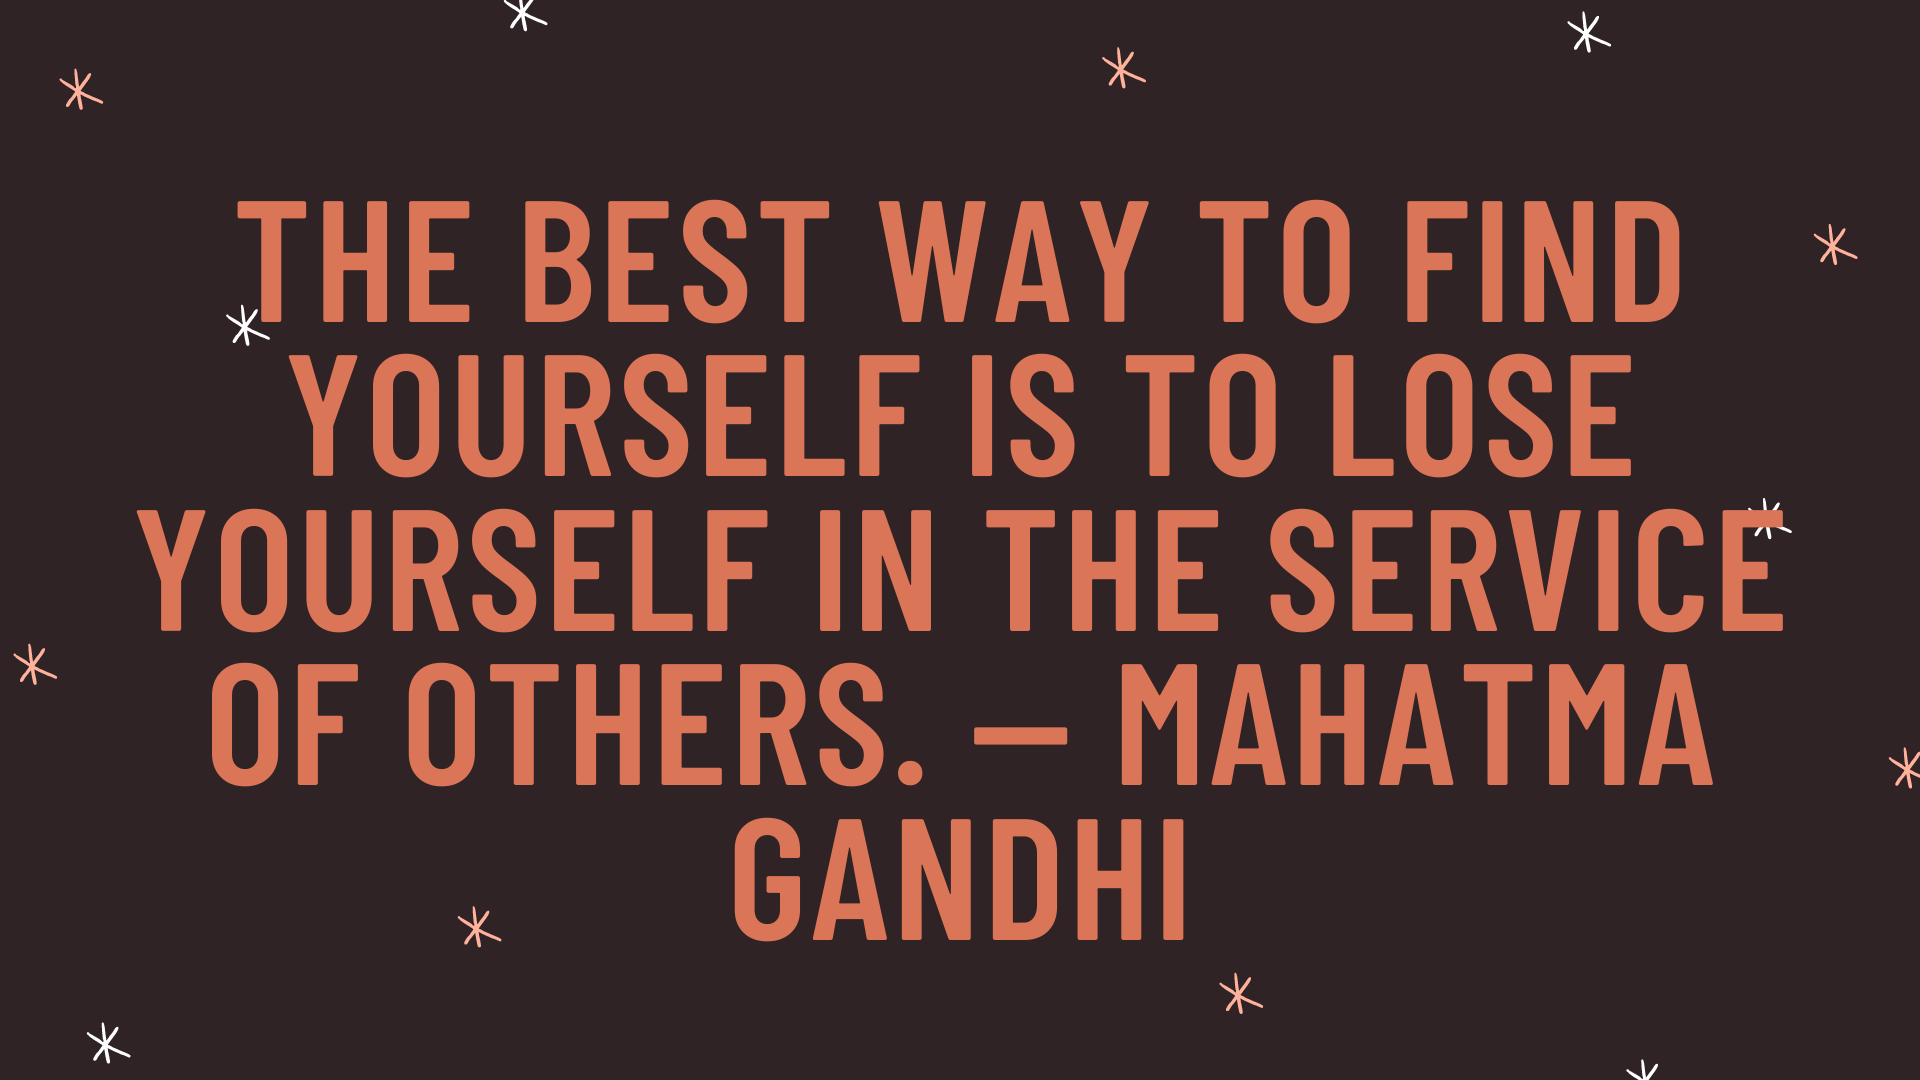 """""""The best way to find yourself is to lose yourself in the service of others."""" — Mahatma Gandhi"""